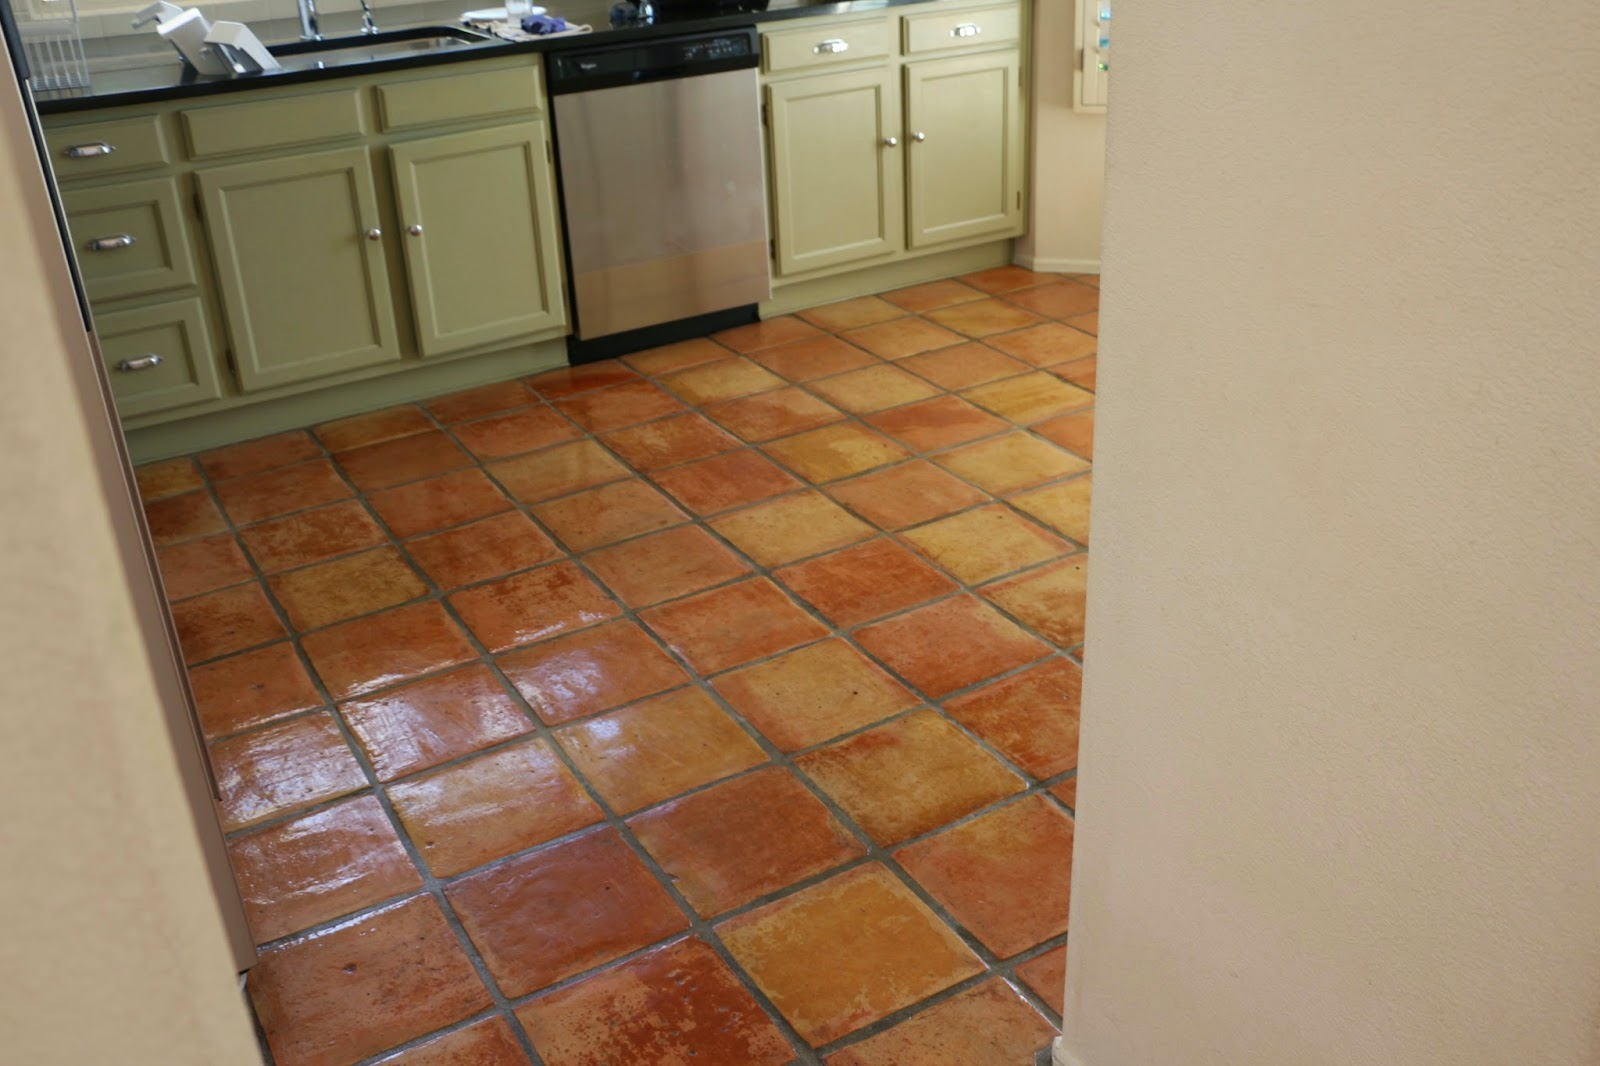 How To Seal Saltillo Tile Floors, How To Seal Terracotta Tile Floors